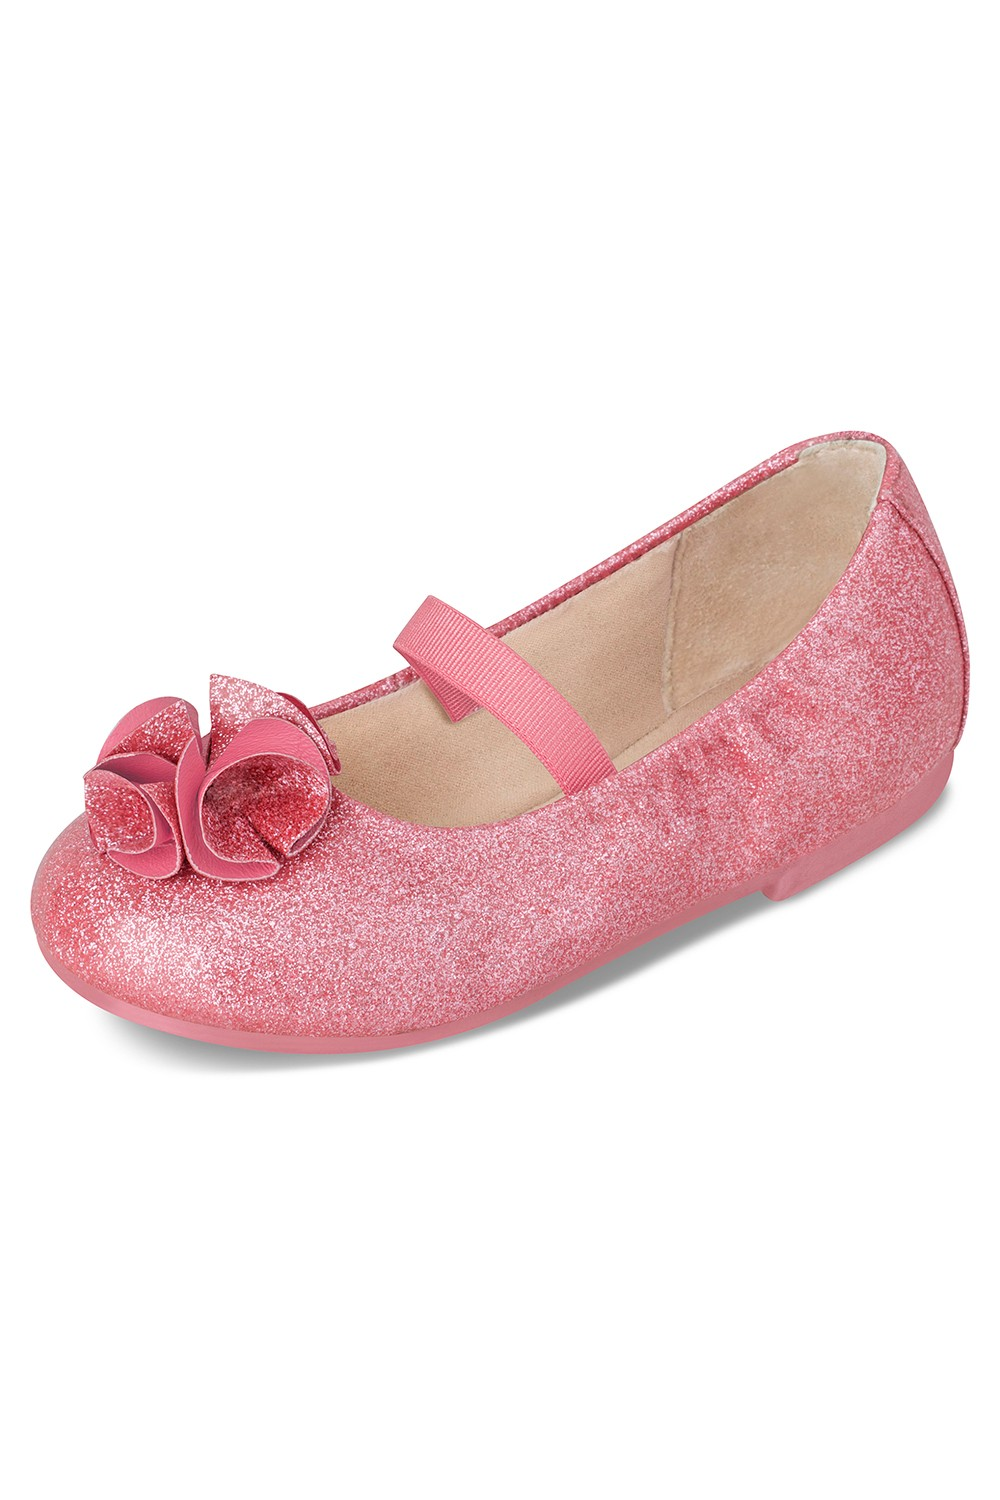 Anais - Toddler Toddlers Fashion Shoes